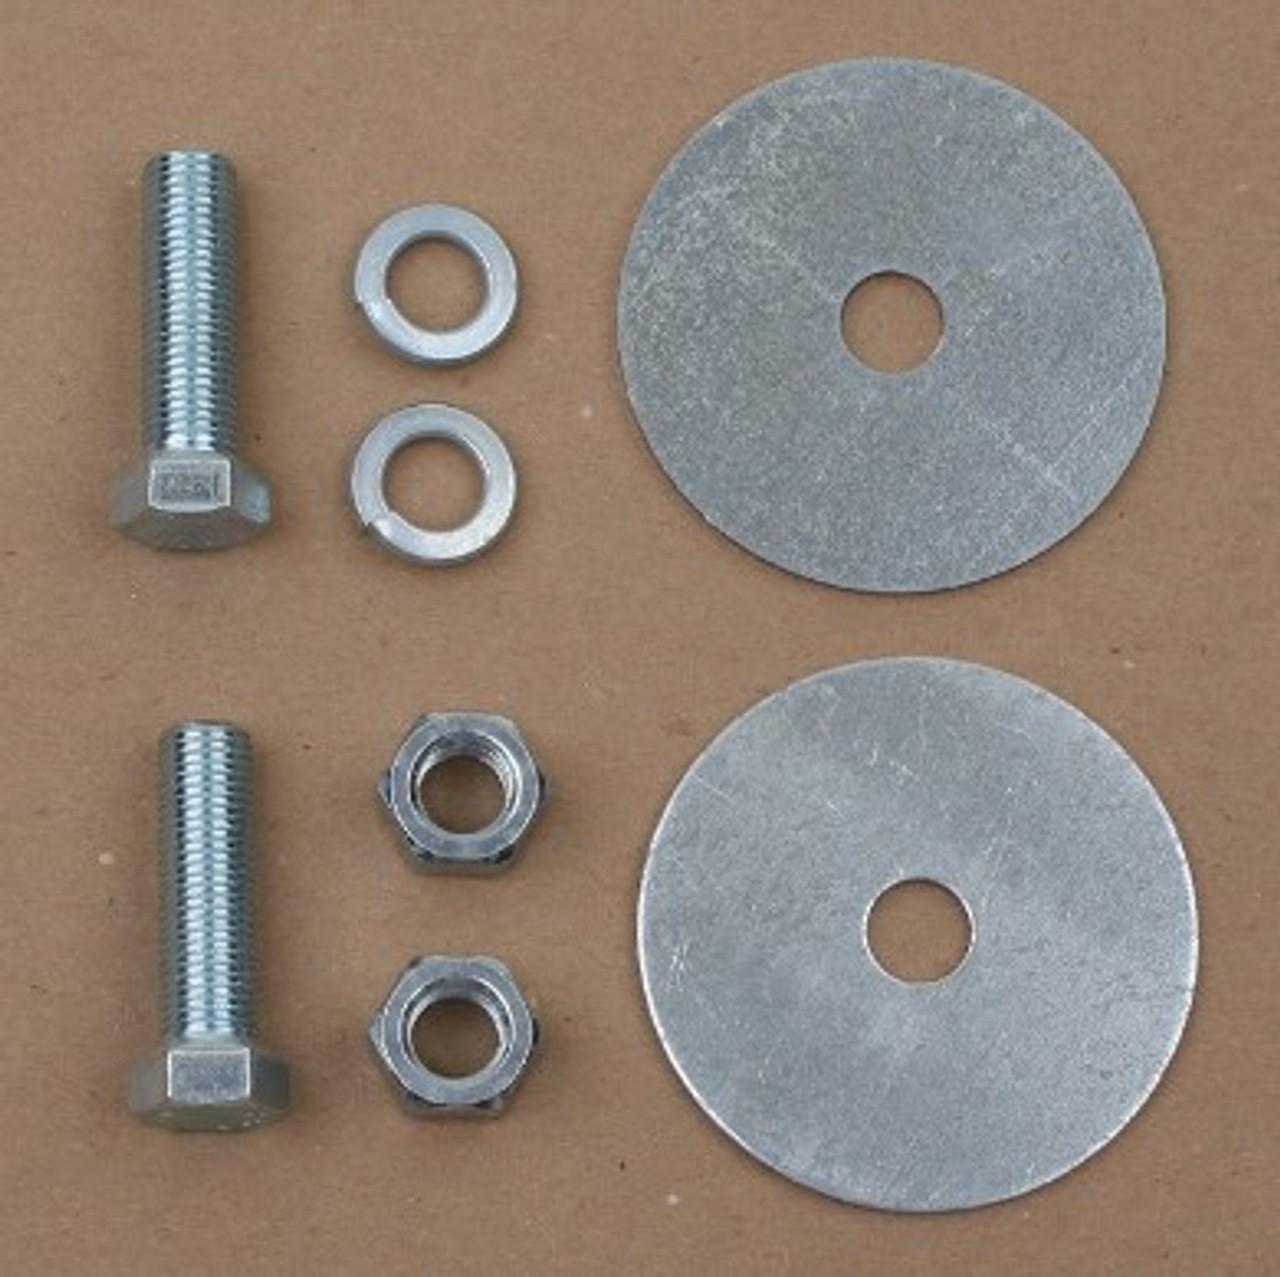 HW #2 - Bolt Kit for Lap/Seatbelt